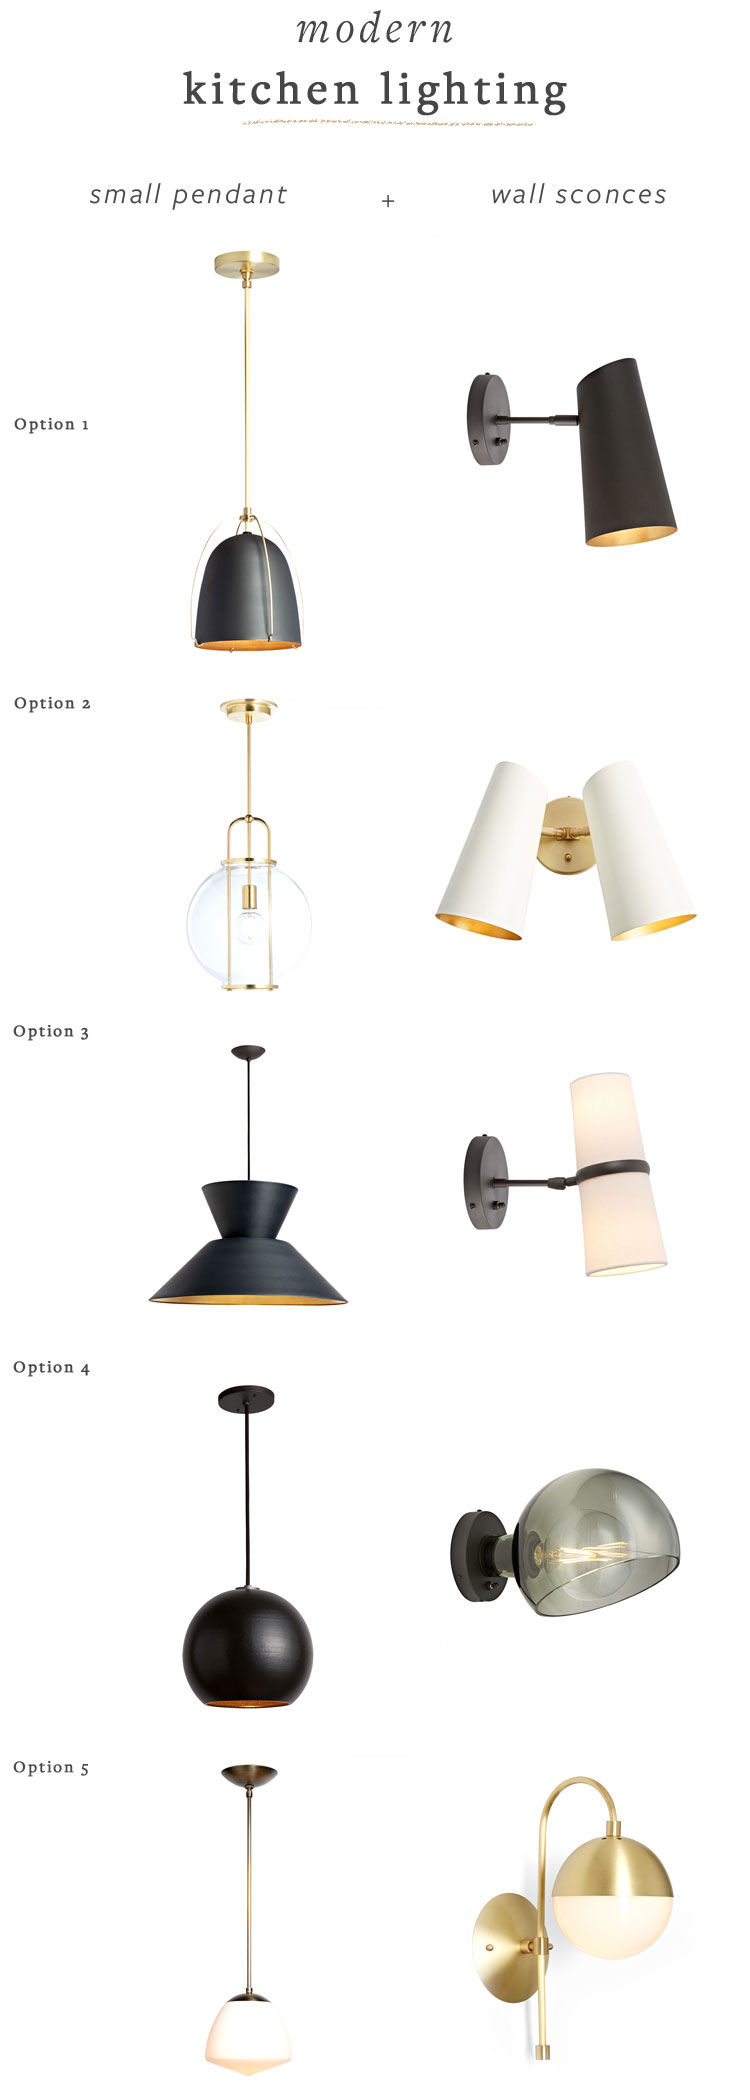 Modern Kitchen Lighting Pairings featuring wall sconces and small pendant lamps from @rejuvenationinc #sponsored #kitchen #kitchenrenovation #kitchenlighting #lighting #kitchenpendant #kitchensconce #smallspaces #fixerupper #renovation